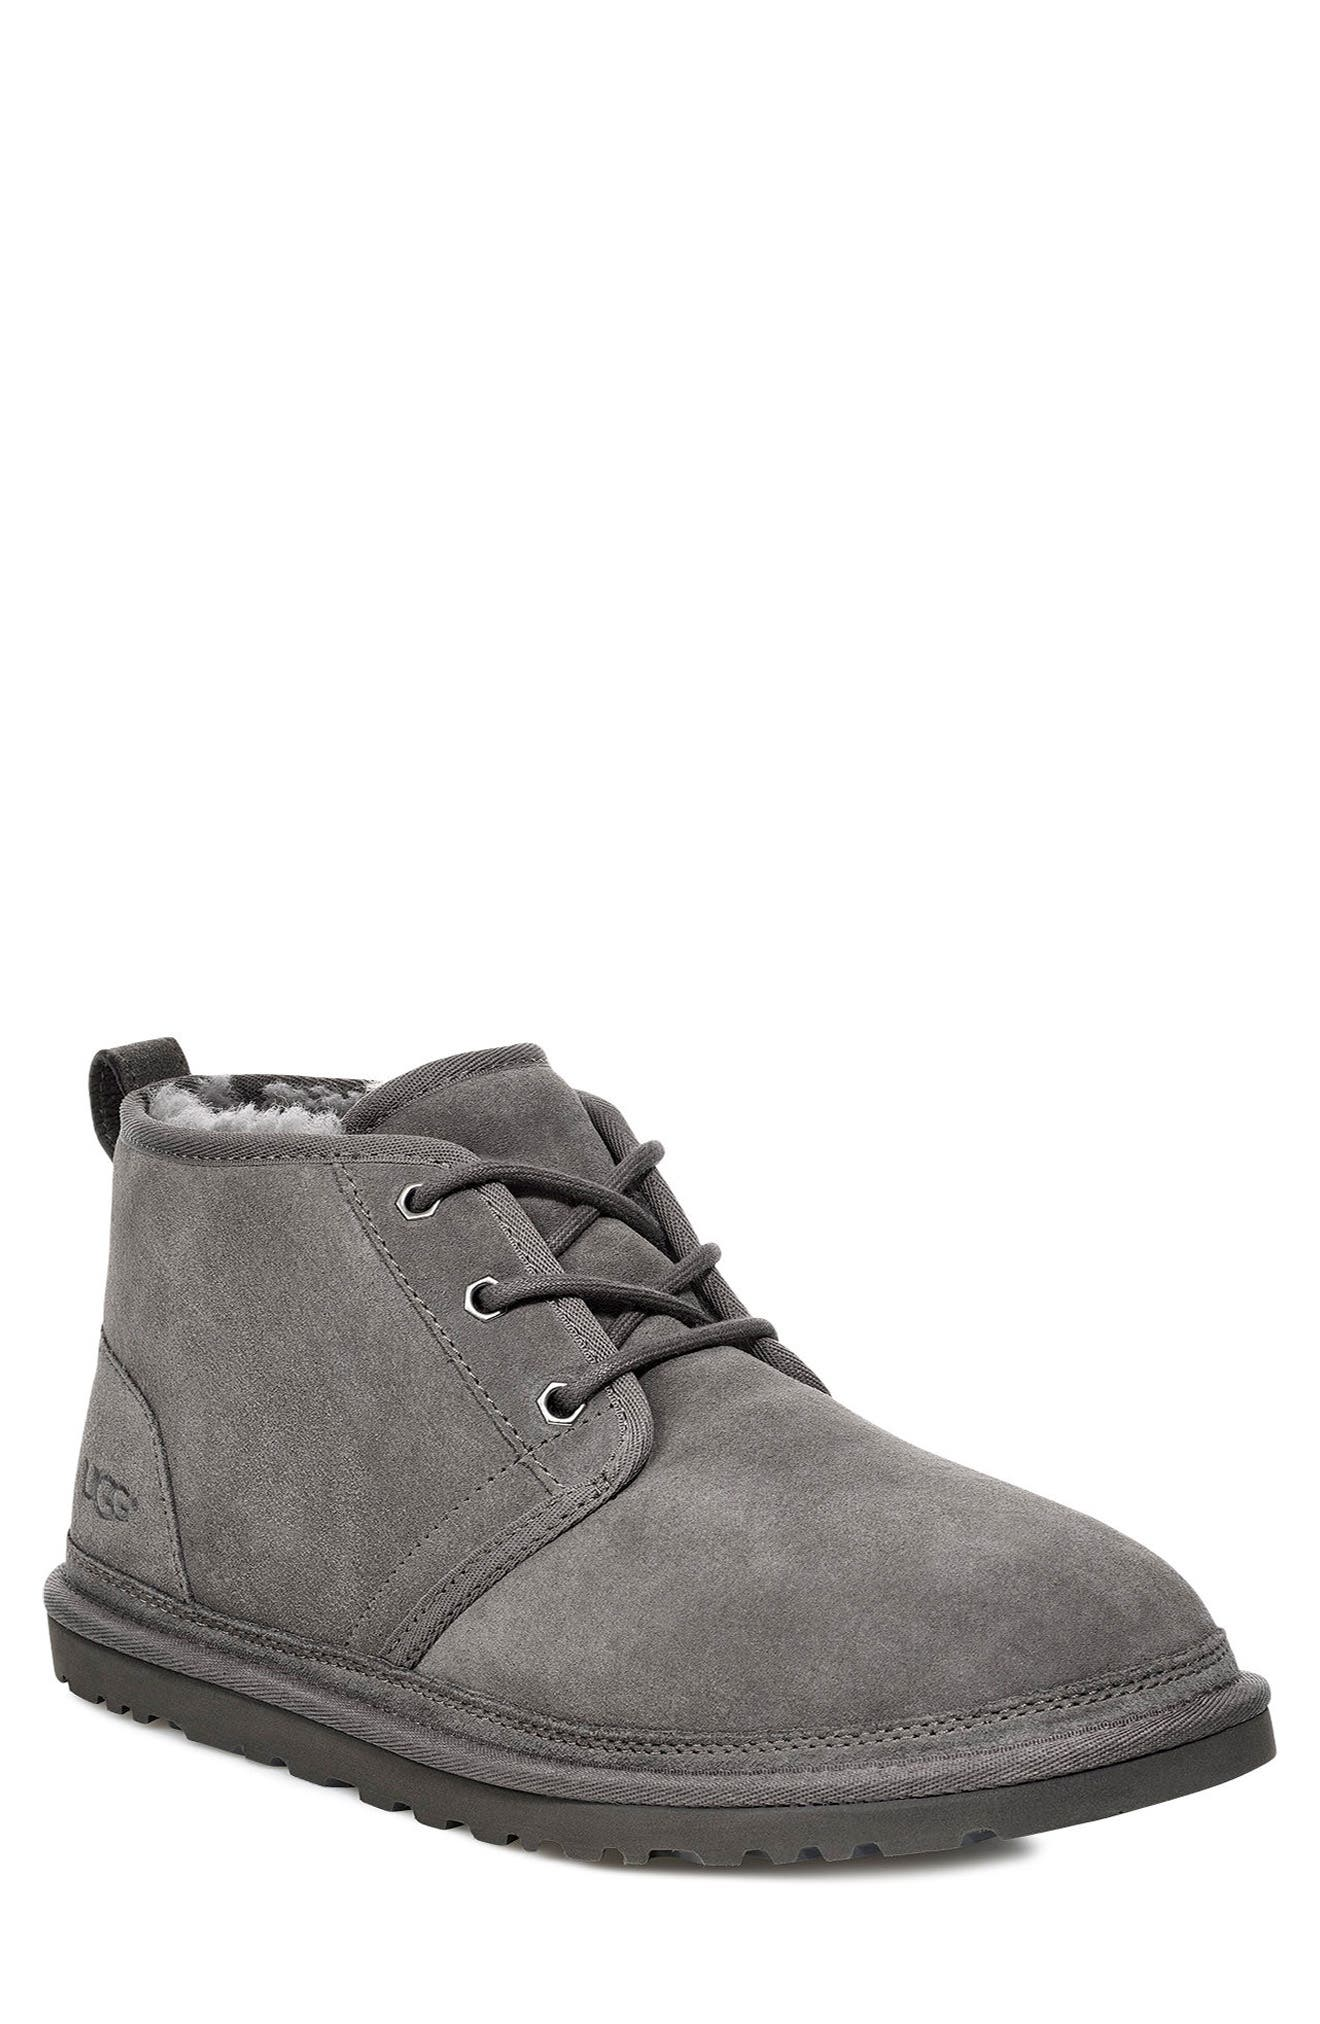 Neumel Chukka Boot,                         Main,                         color, CHARCOAL SUEDE